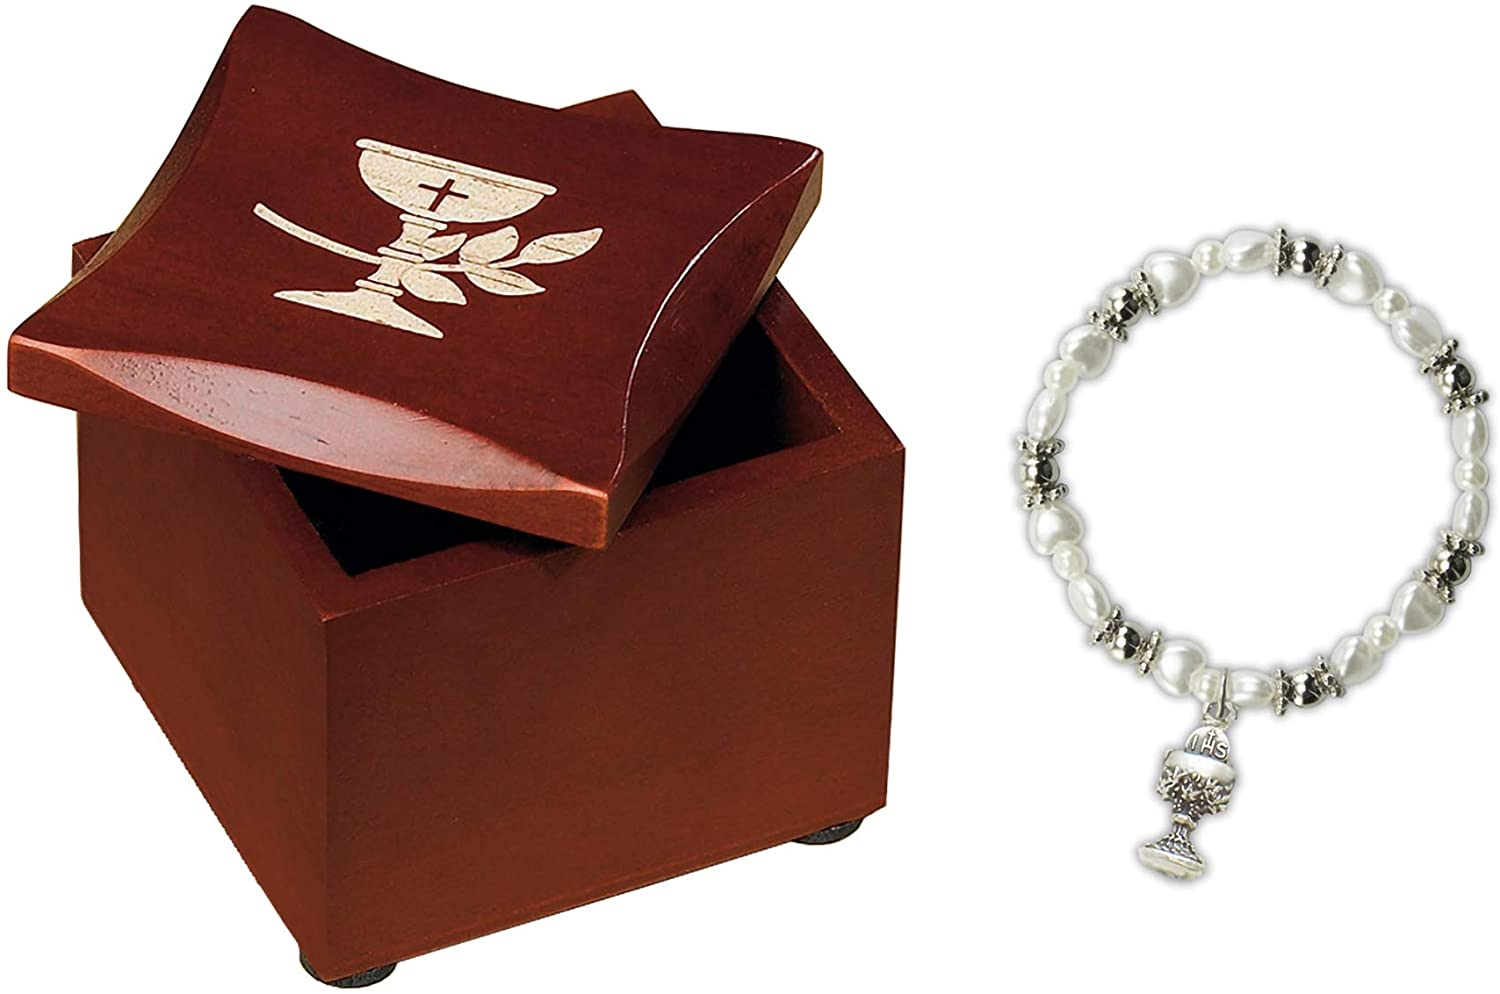 Cross Chalice Cherry Brown and Silver 3 x 2 Wood Decorative Box and Bracelet